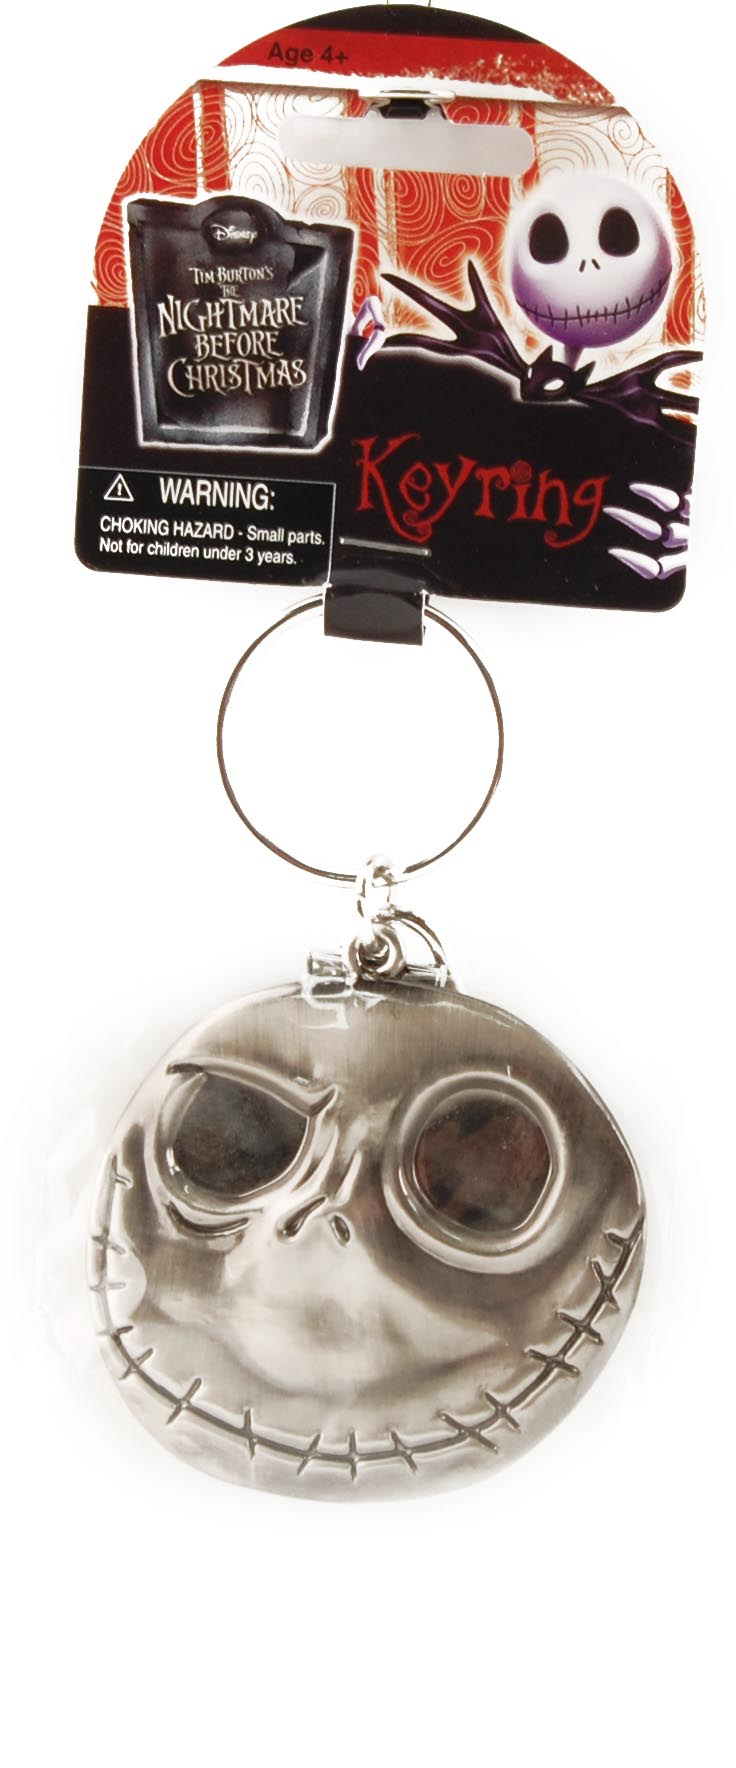 Disney Nightmare Before Christmas Good Day/Bad Day Key Ring